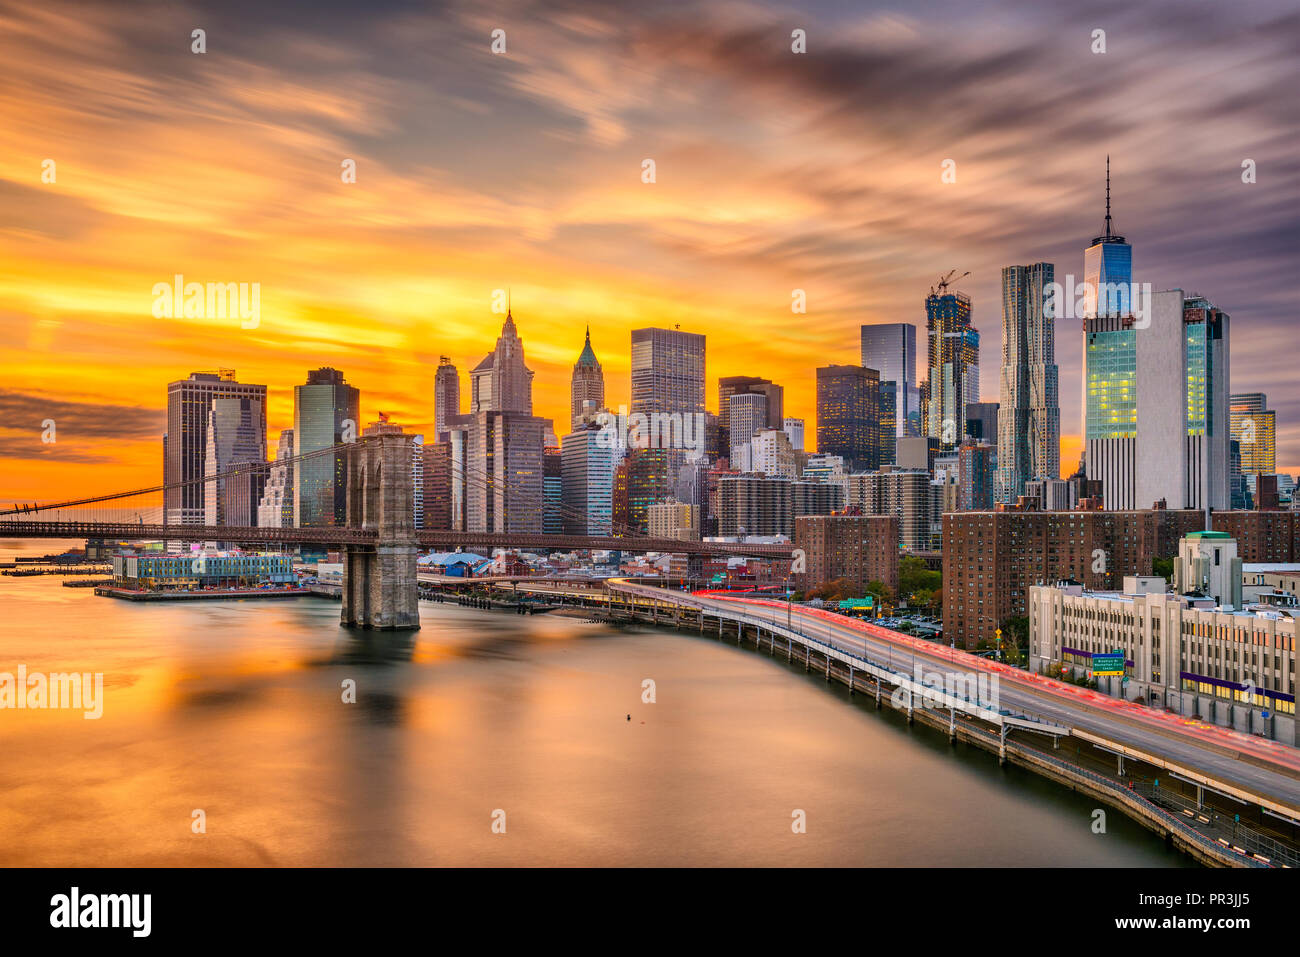 New York, New York, USA lower Manhattan skyline over the East River with the Brooklyn Bridge after sunset. - Stock Image